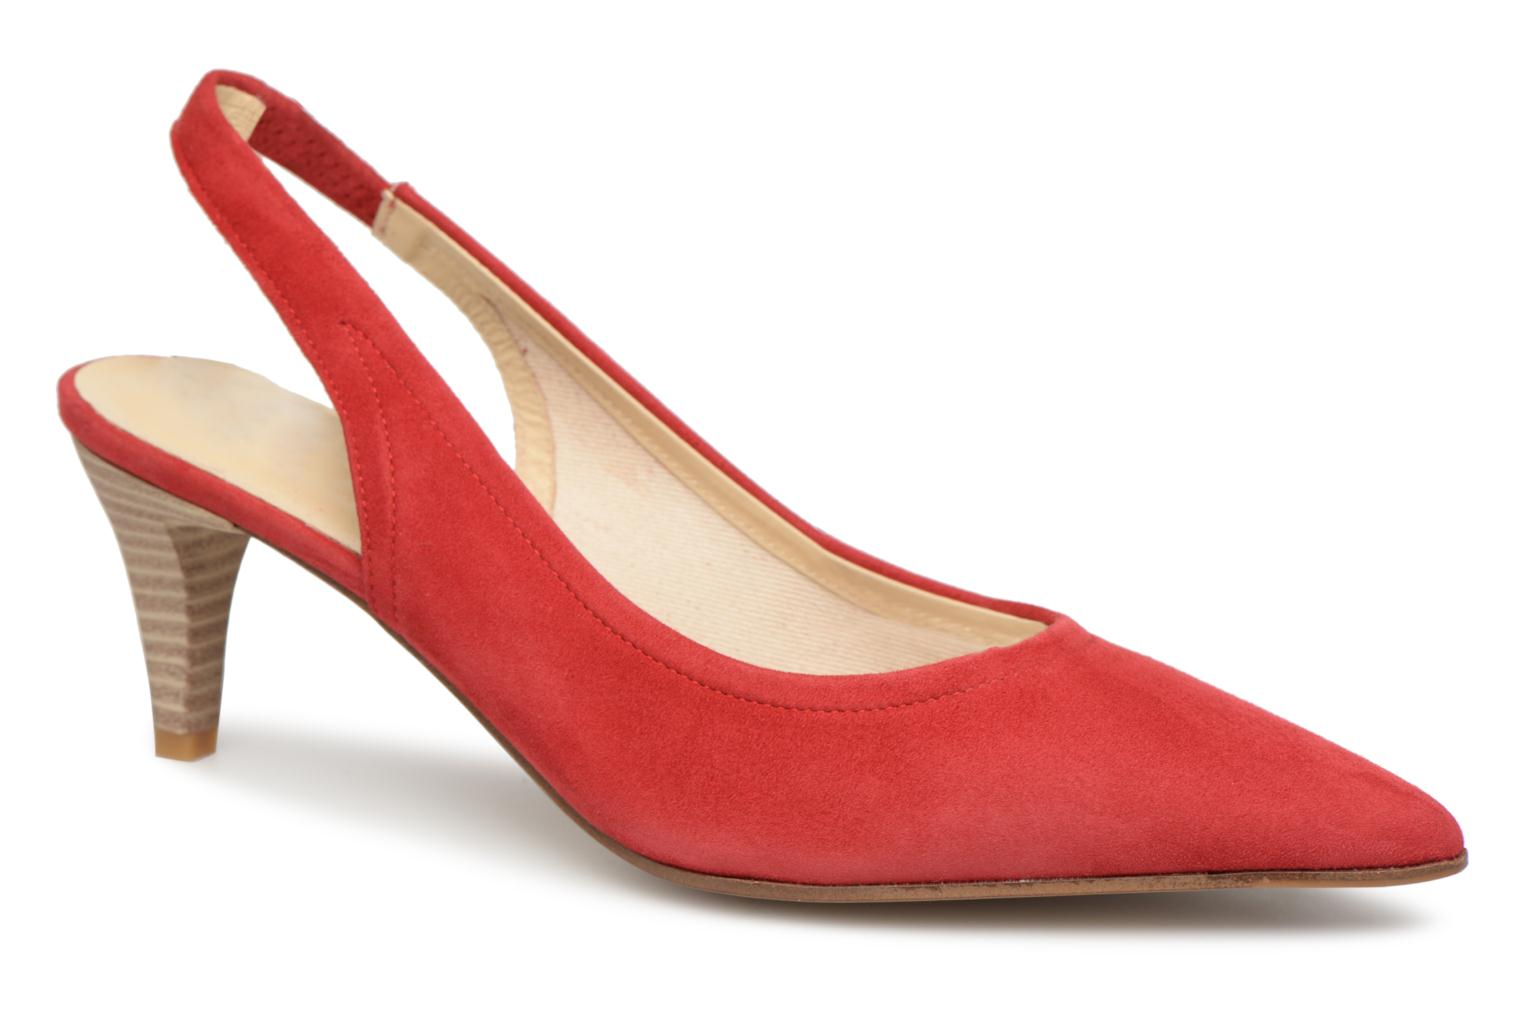 Elizabeth Stuart REVEL 300 (Red) (339871) - High heels chez (339871) (Red) fcc6a9